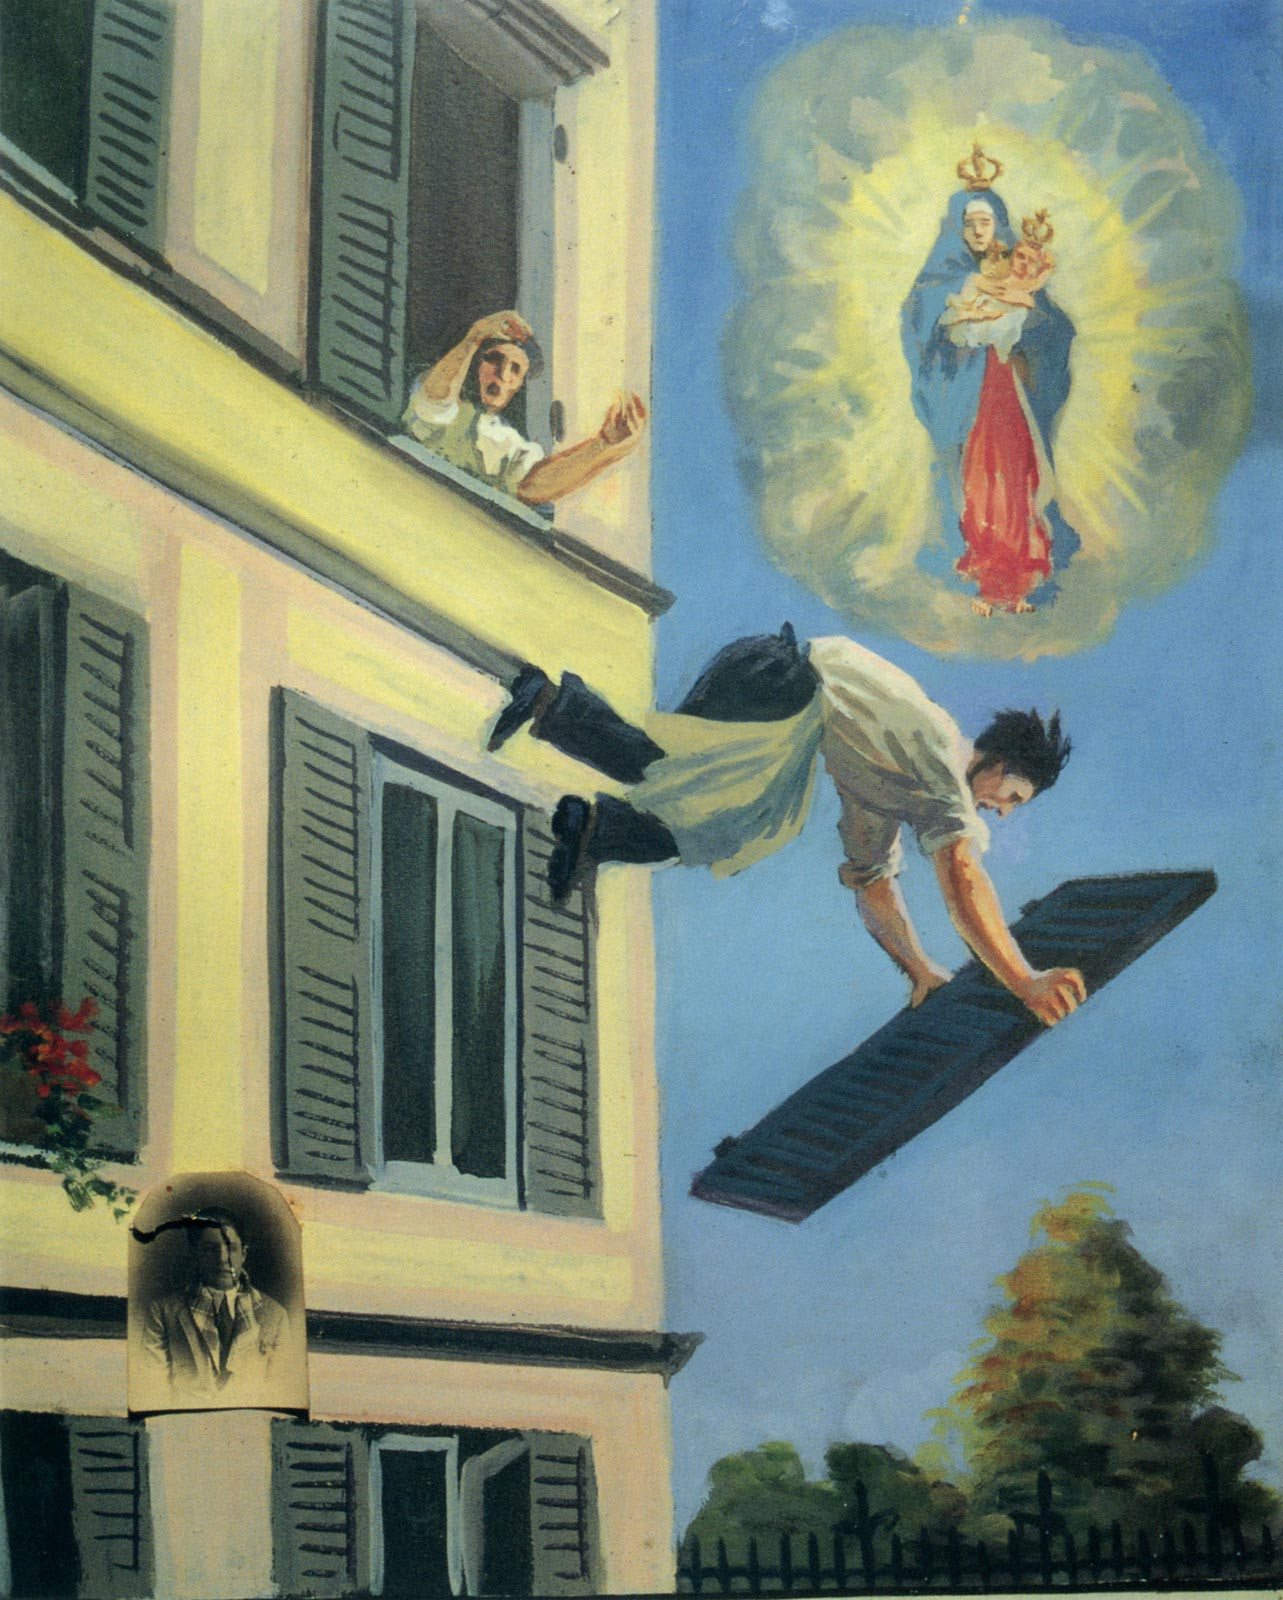 ex-voto-10-worker-falls-from-a-window-september-27-1928